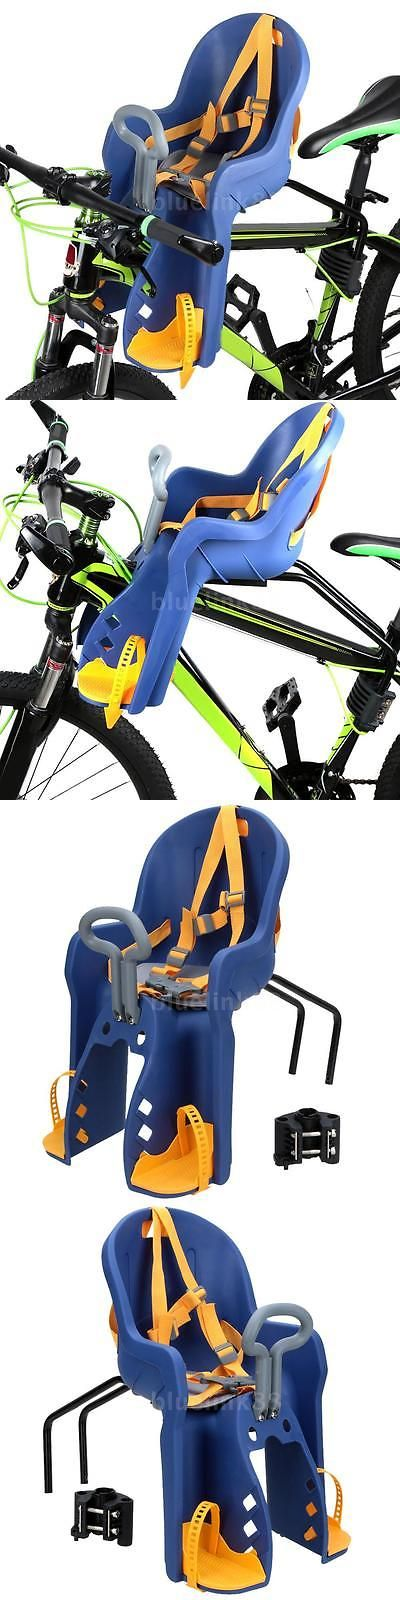 Child Seats 56808: Bicycle Kids Child Front Baby Seat Bike Carrier Usa Standard With Handrail G5n8 -> BUY IT NOW ONLY: $74.0 on eBay!